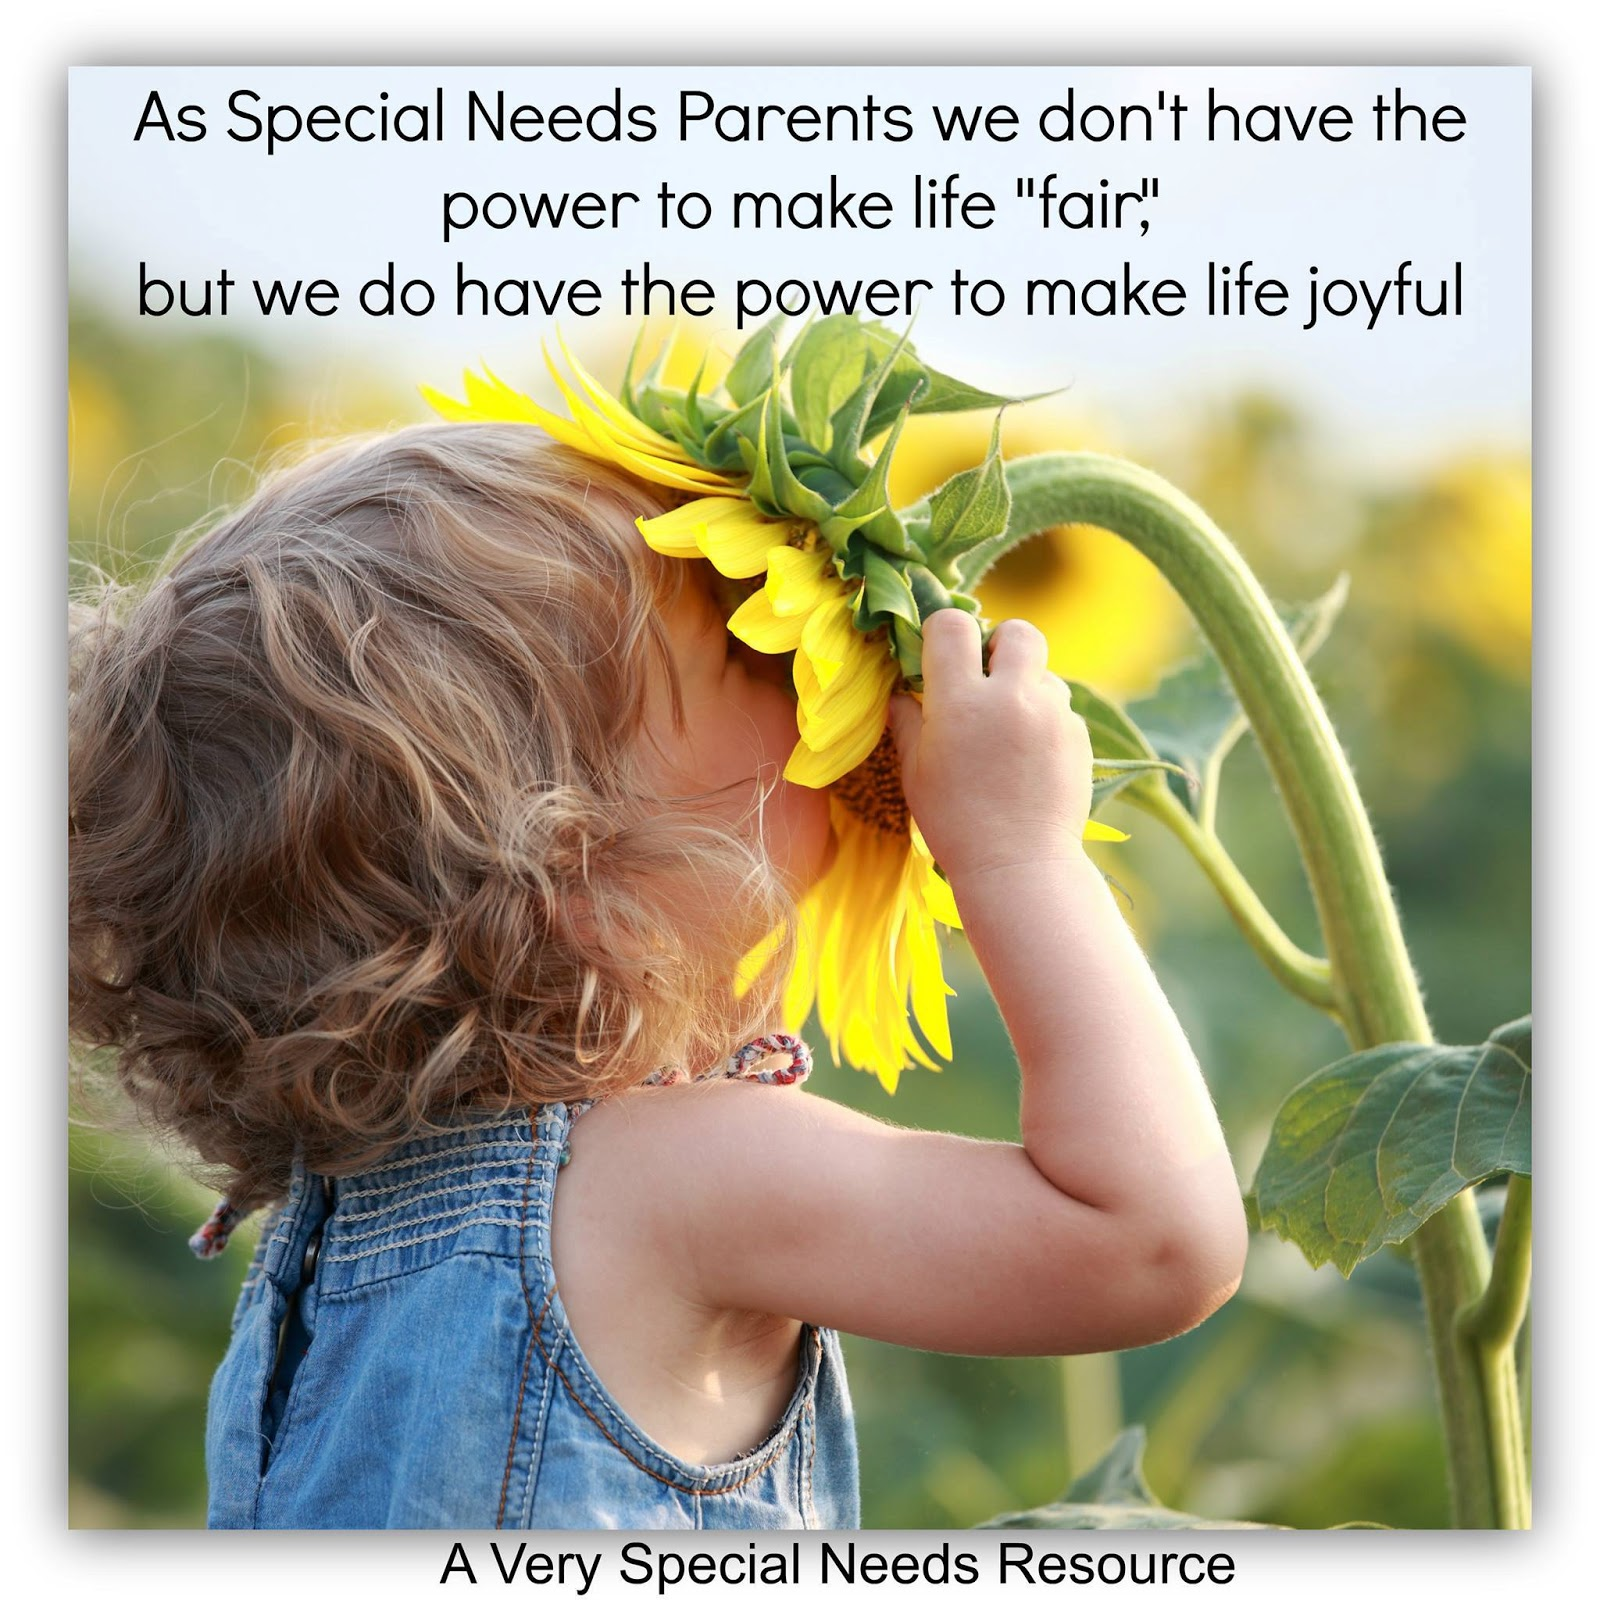 From Parents Have Power To Make Special >> As Special Needs Parents We Don T Have The Power To Make Life Fair